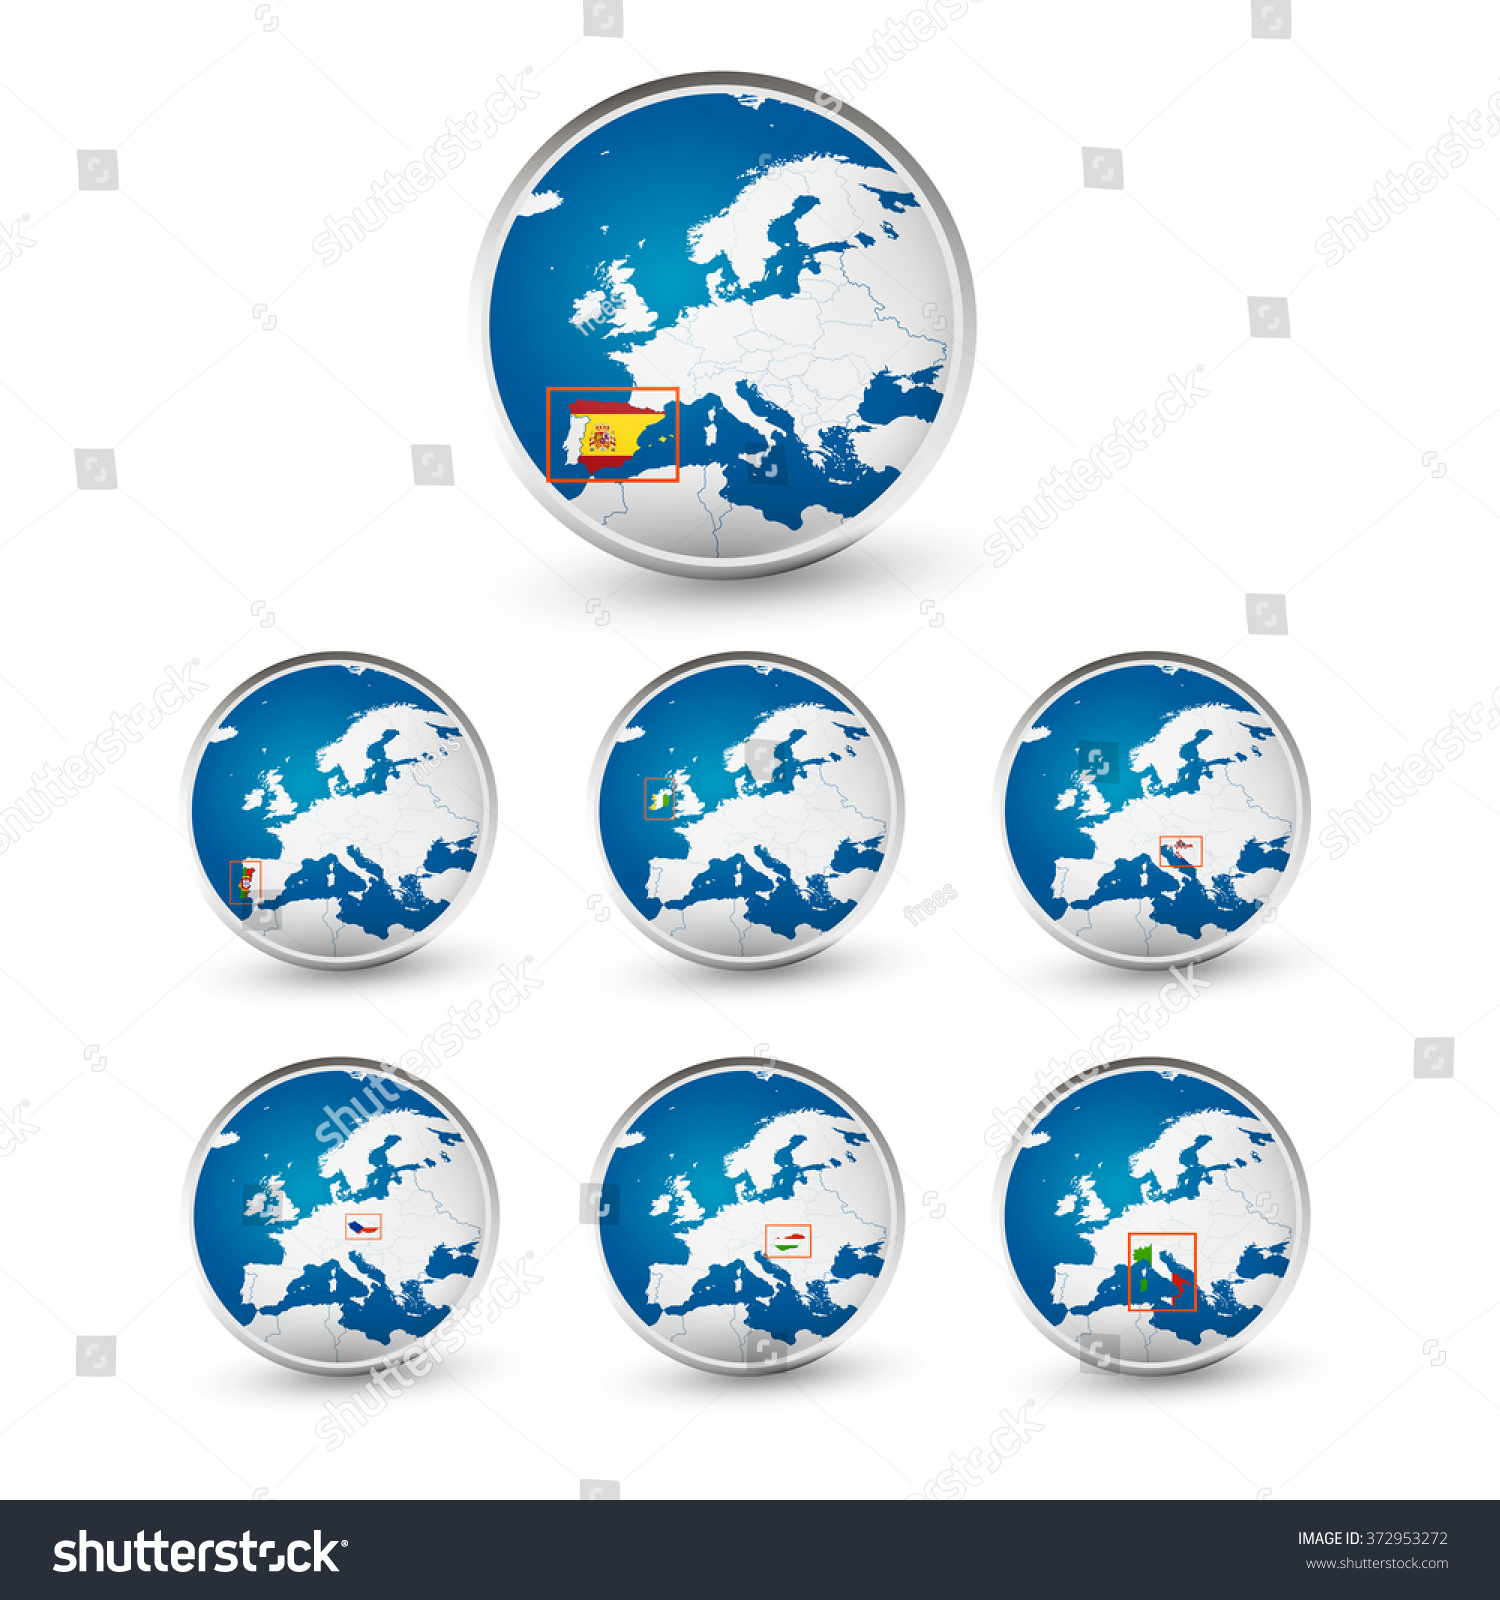 Globe set eu countries world map vectores en stock 372953272 globe set with eu countries world map location part 1 all elements are separated in gumiabroncs Choice Image